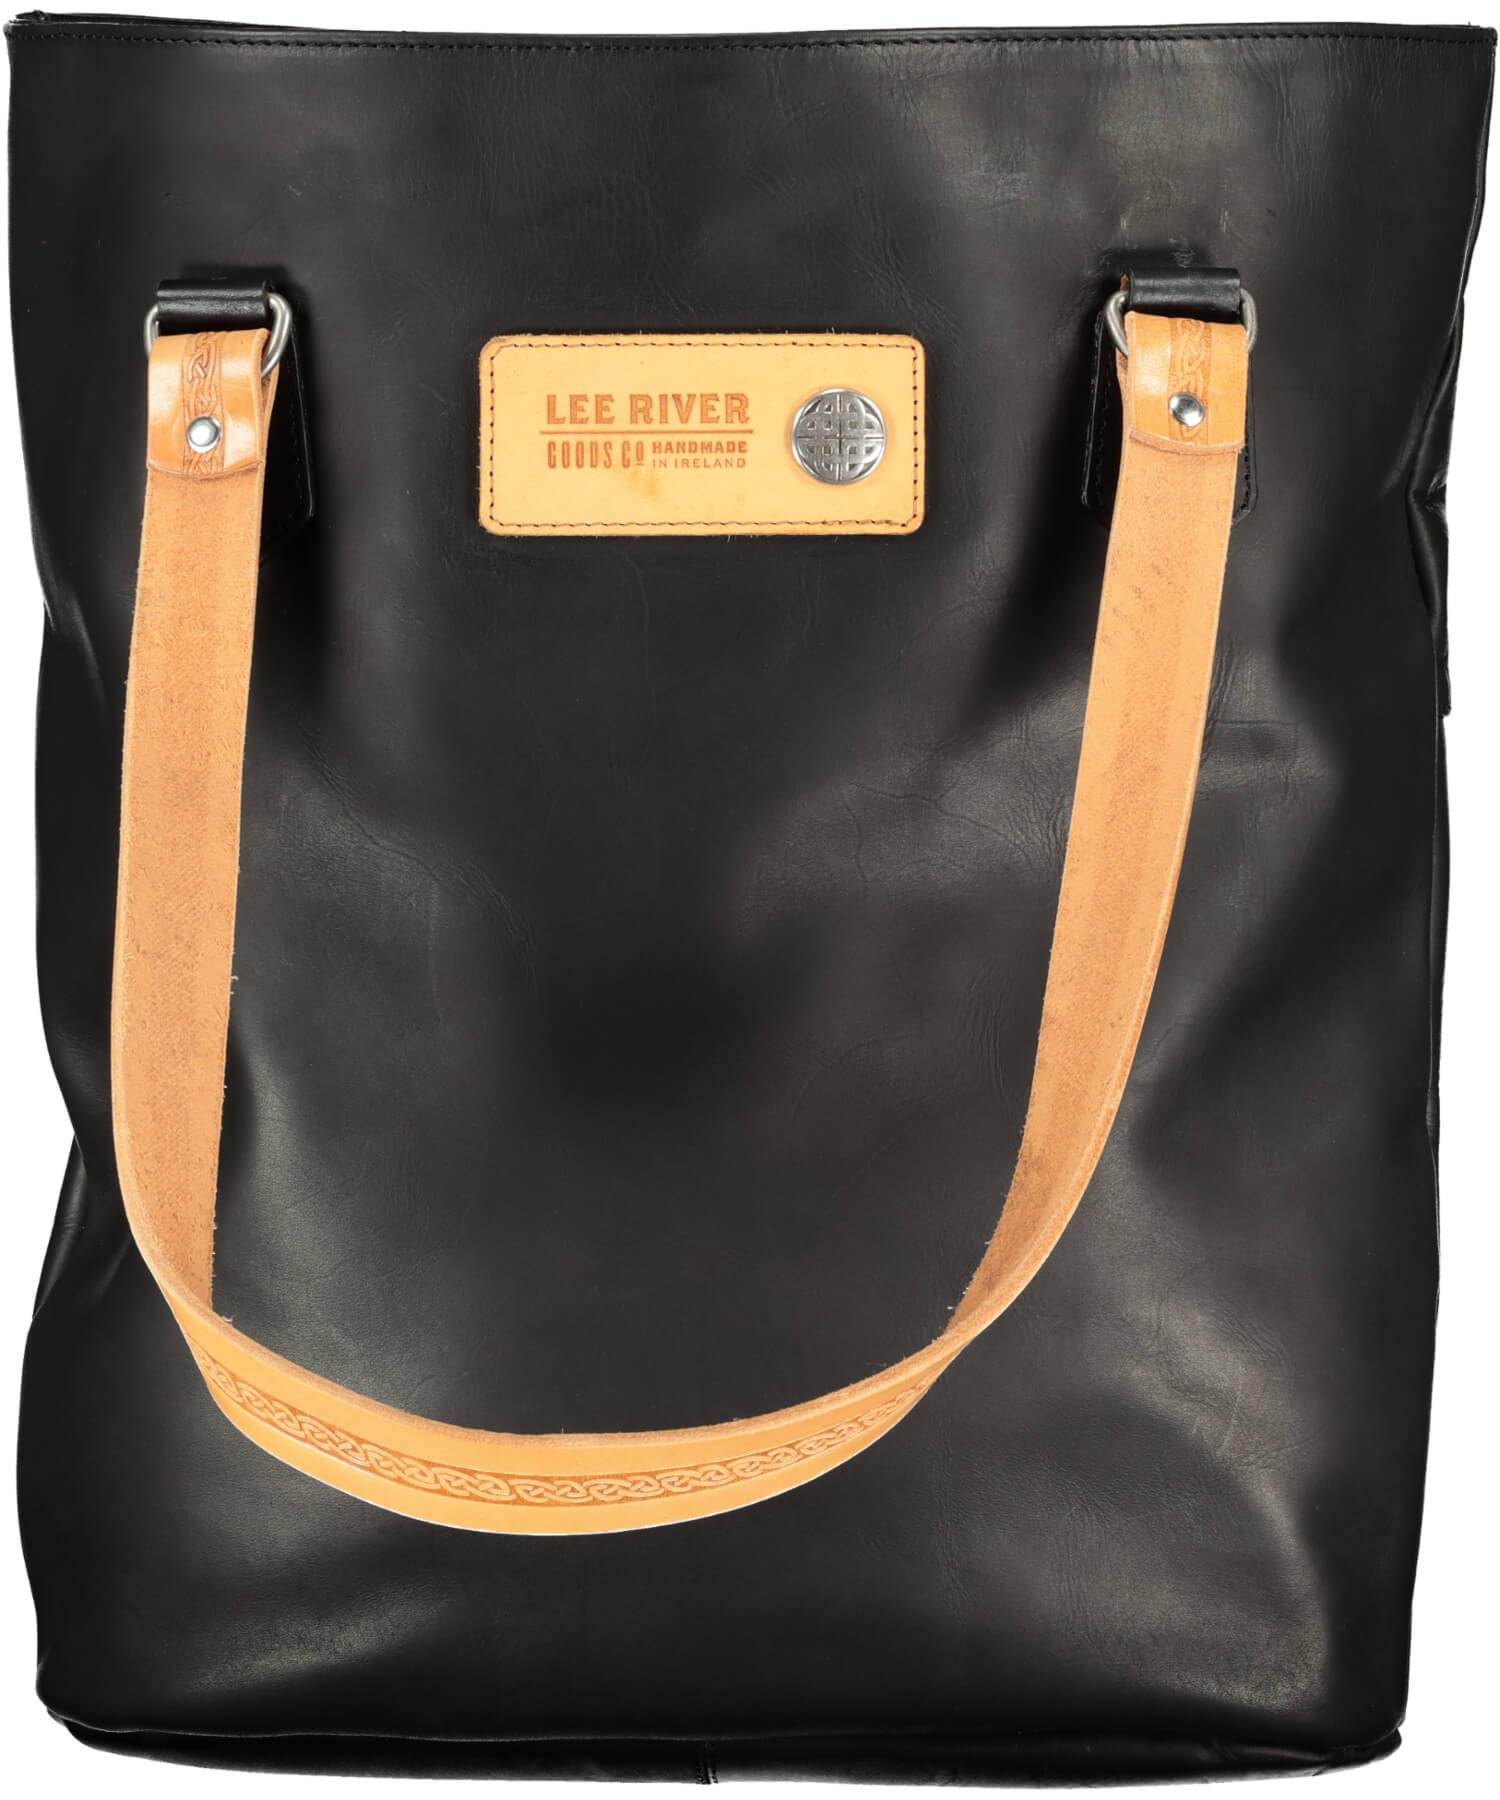 Tote Bag - Black - [Lee River] - Bags, Purses & Wallets - Irish Gifts